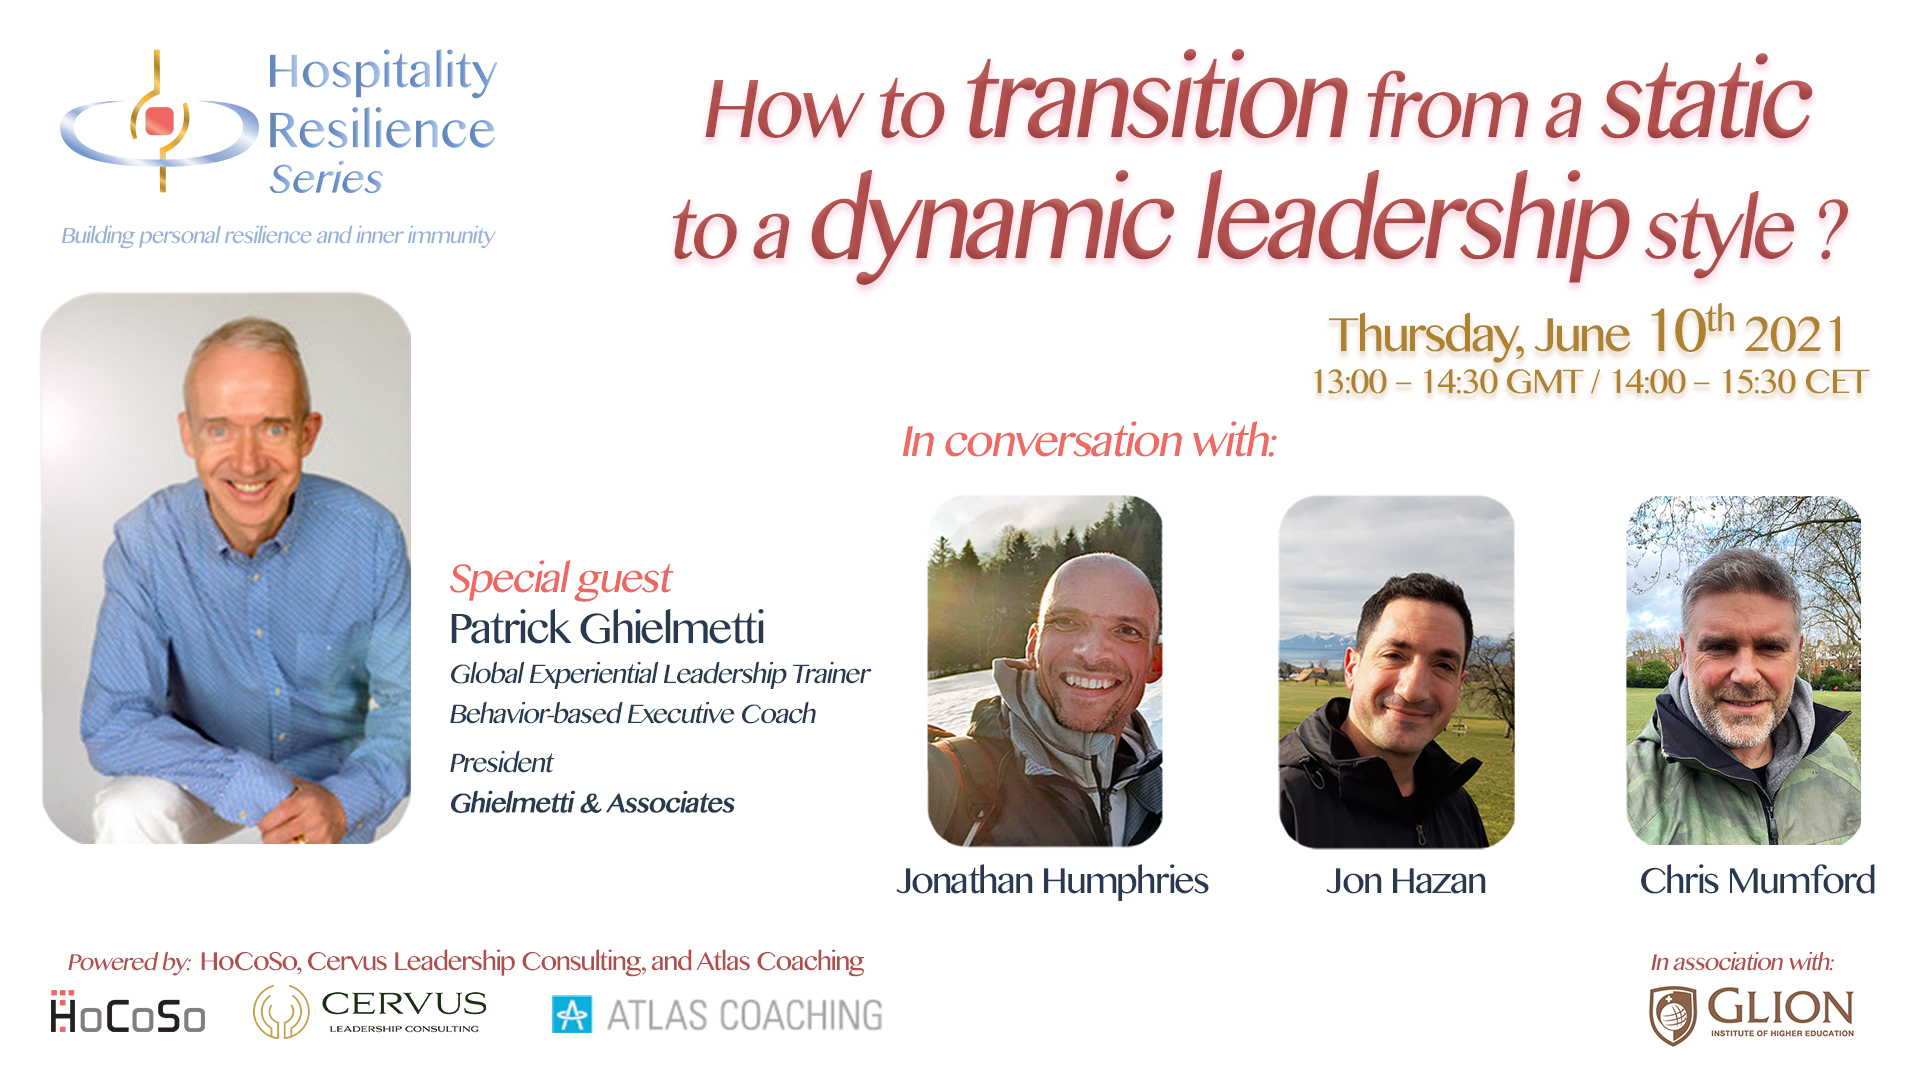 How to transition from a dynamic to a dynamic leadership style with Patrick Ghielmetti for the Hospitality Resilience Series